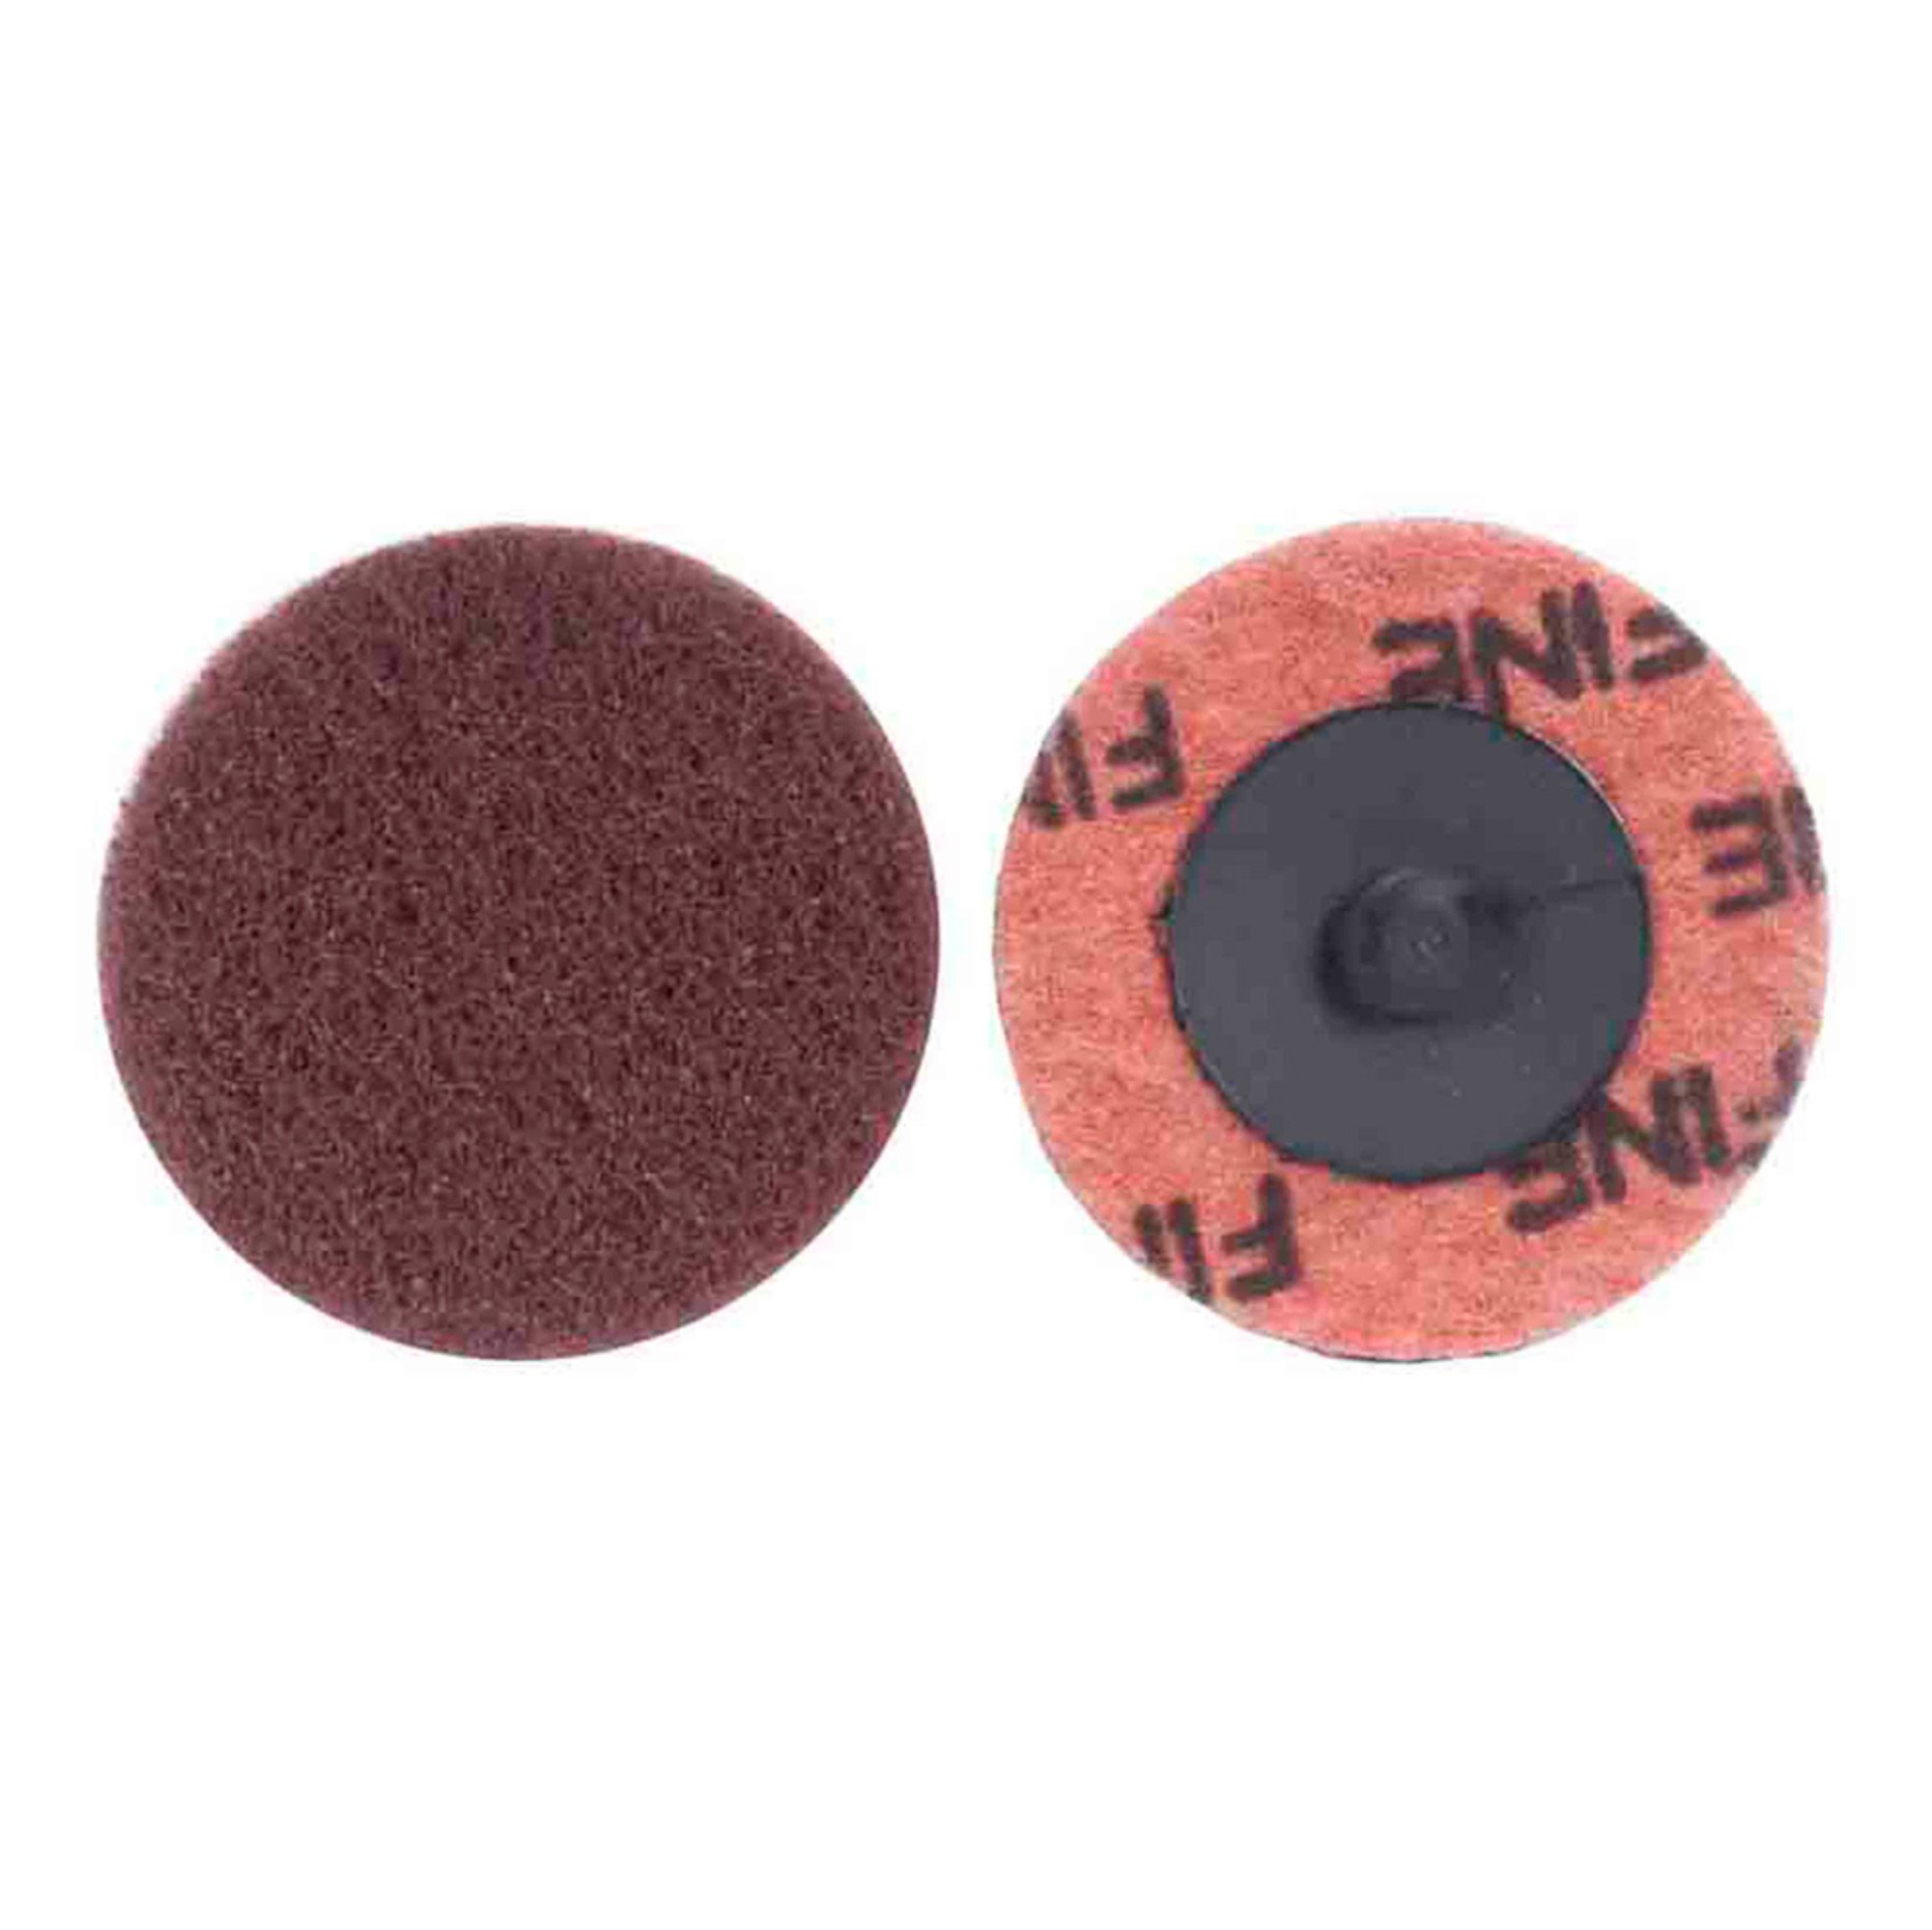 St Gobain-544 - Merit A/O Buffing Qc Discs 3, Sold As 1 Each